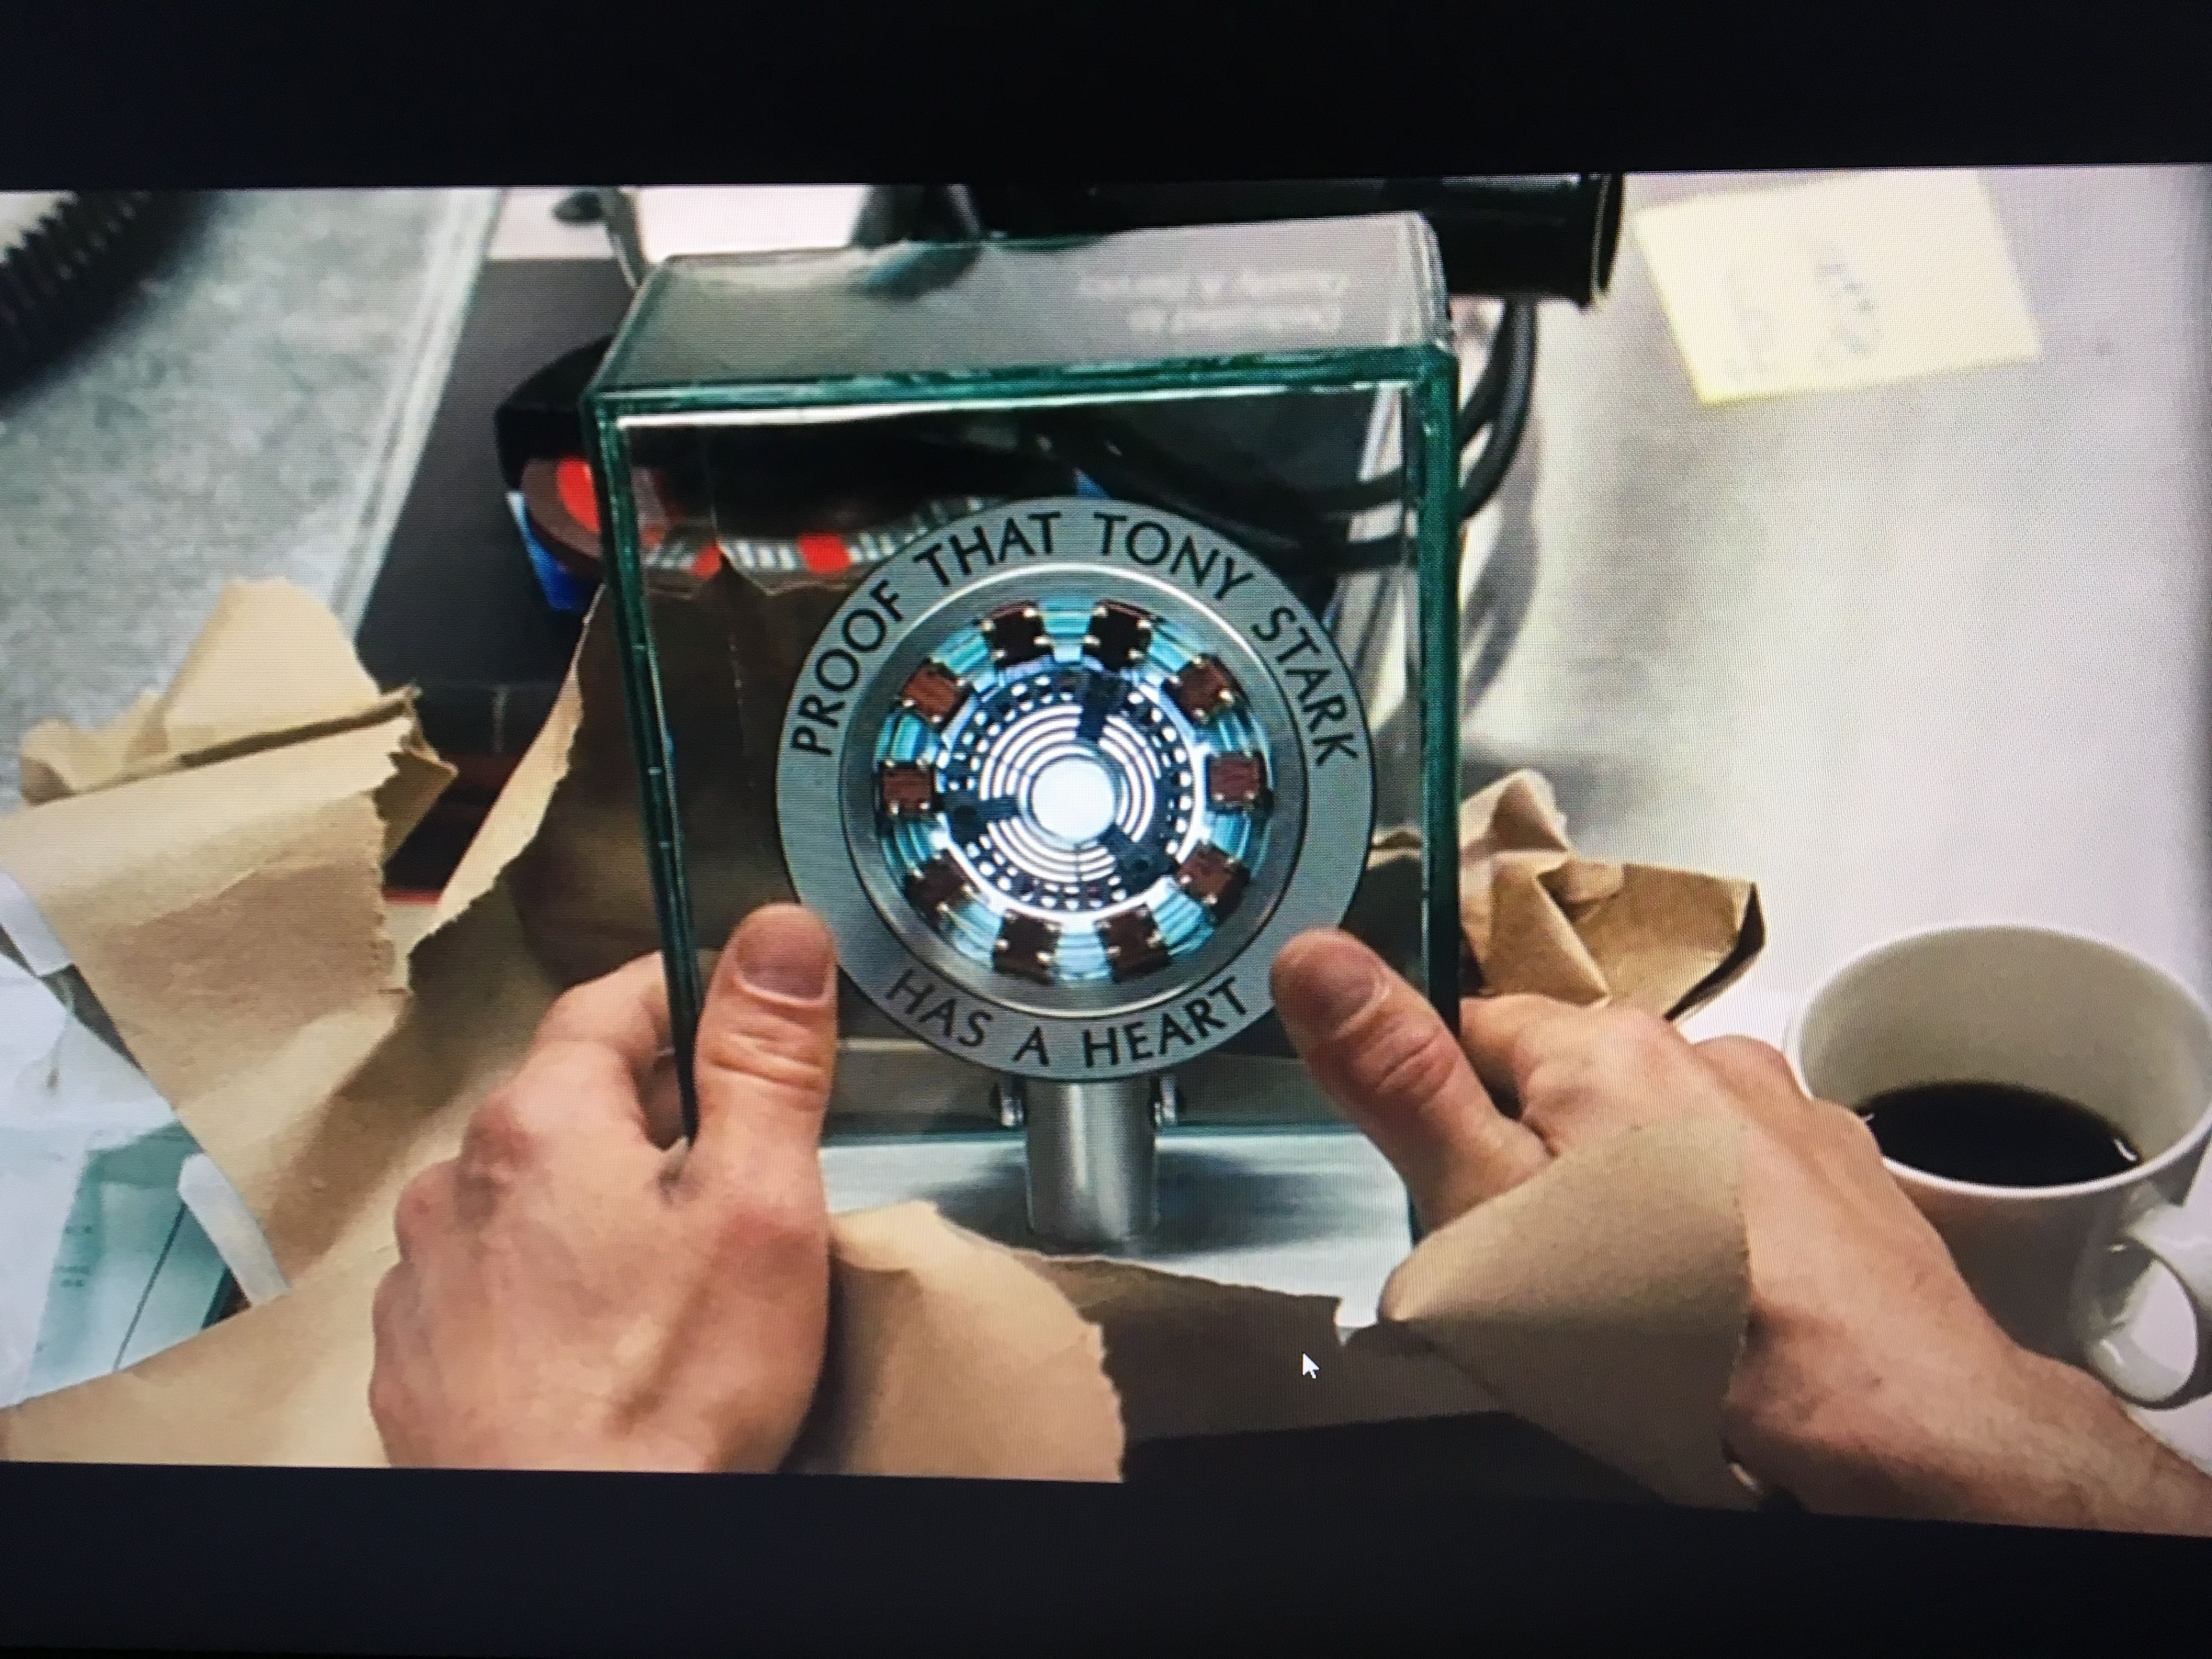 Pin by eleutheromania on Marvel ️ (With images) Avengers